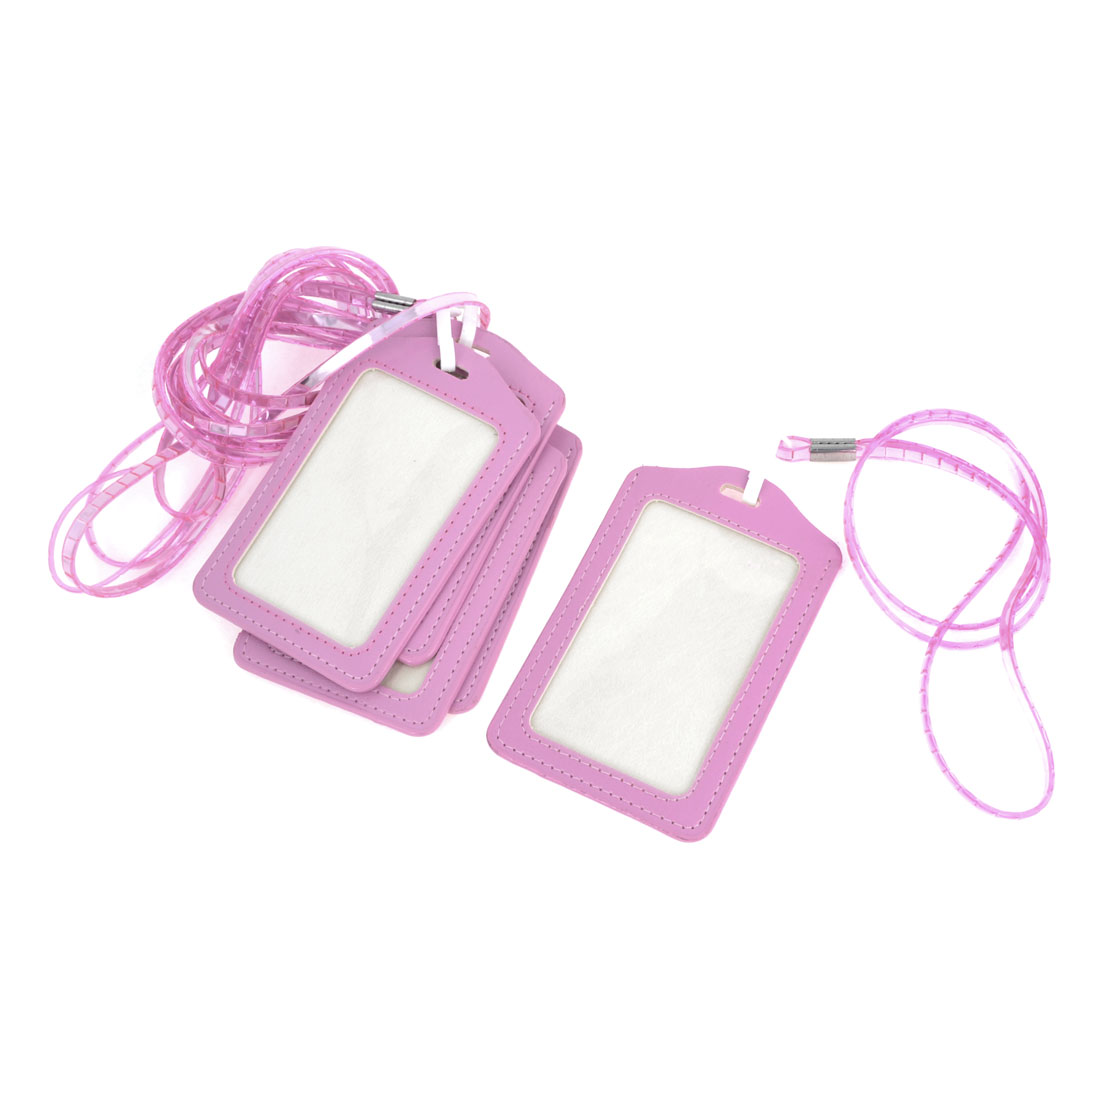 5 Pieces Pink Vertical Name ID Card Badge Holder Protector Neck Strap Lanyard